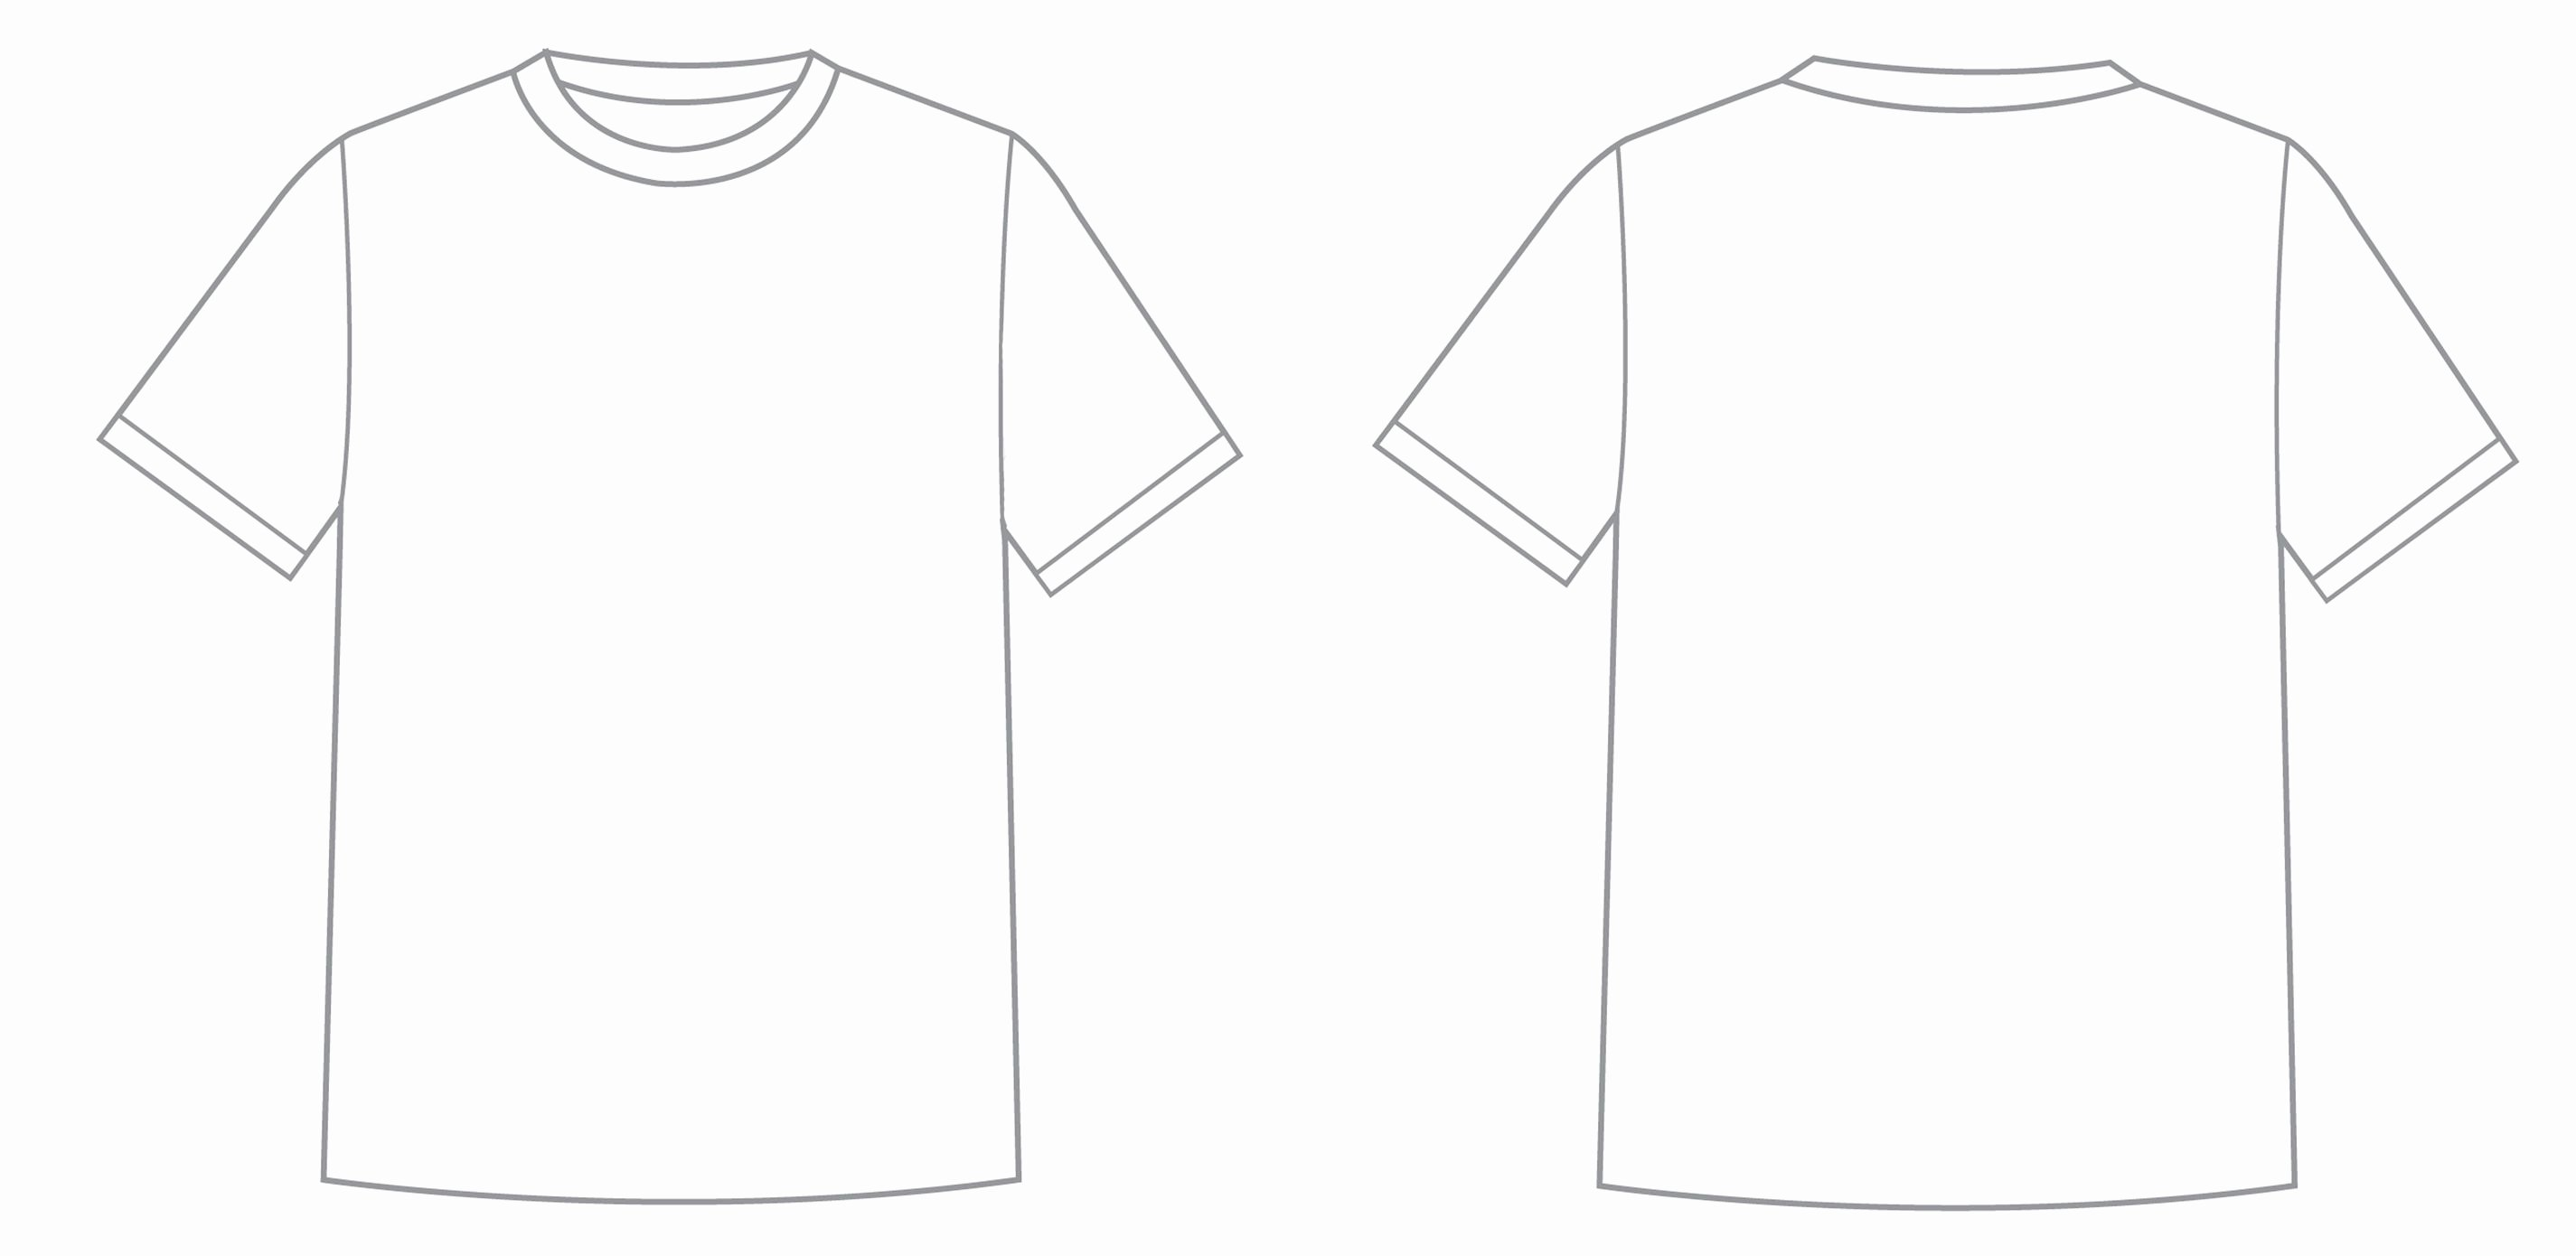 T-shirt Drawing Inspirational T Shirt Template Google Search Edy